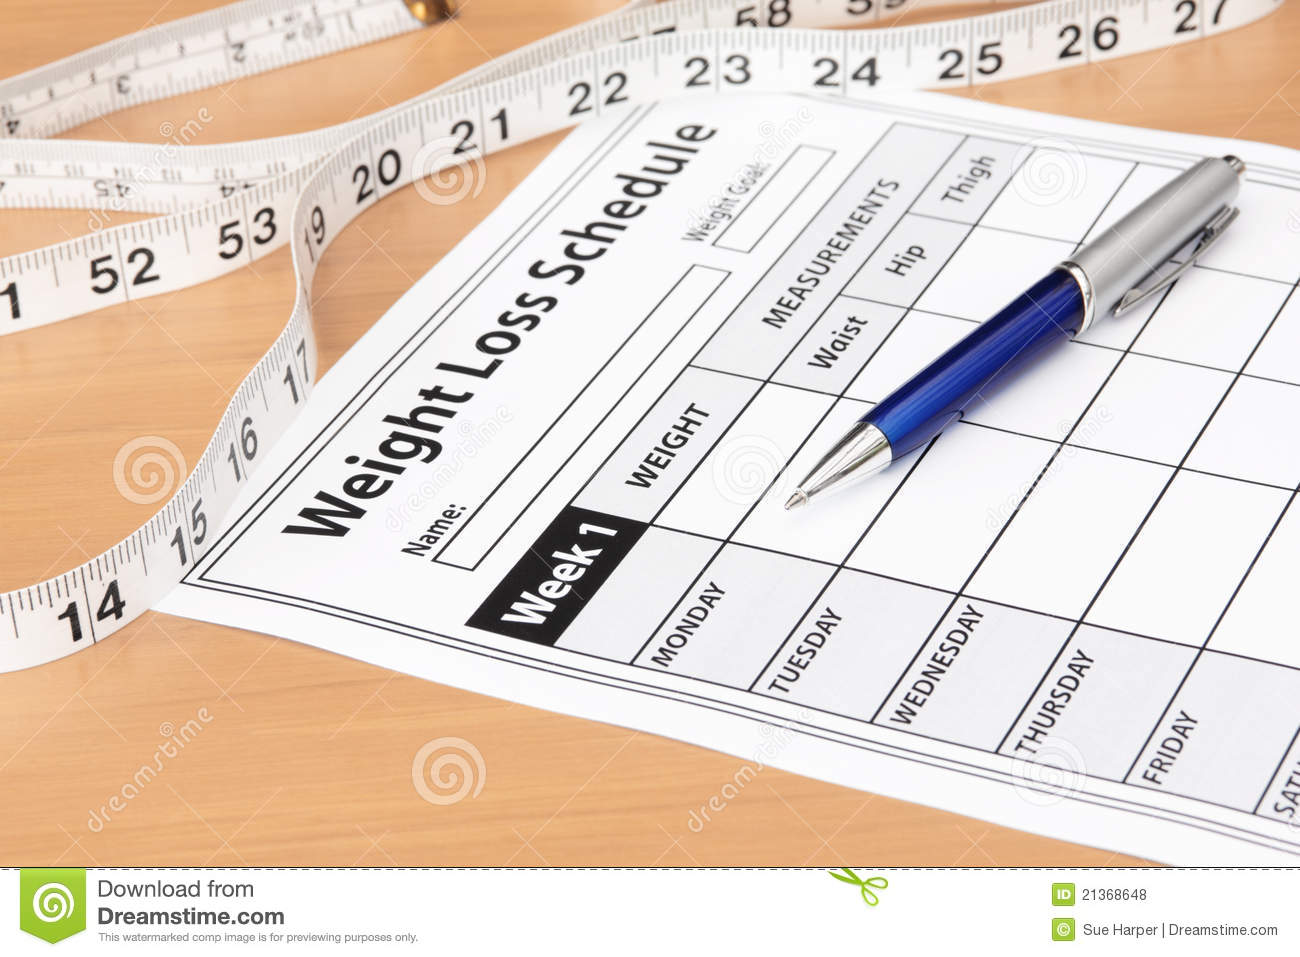 weight loss schedule with tape measure stock photo image of